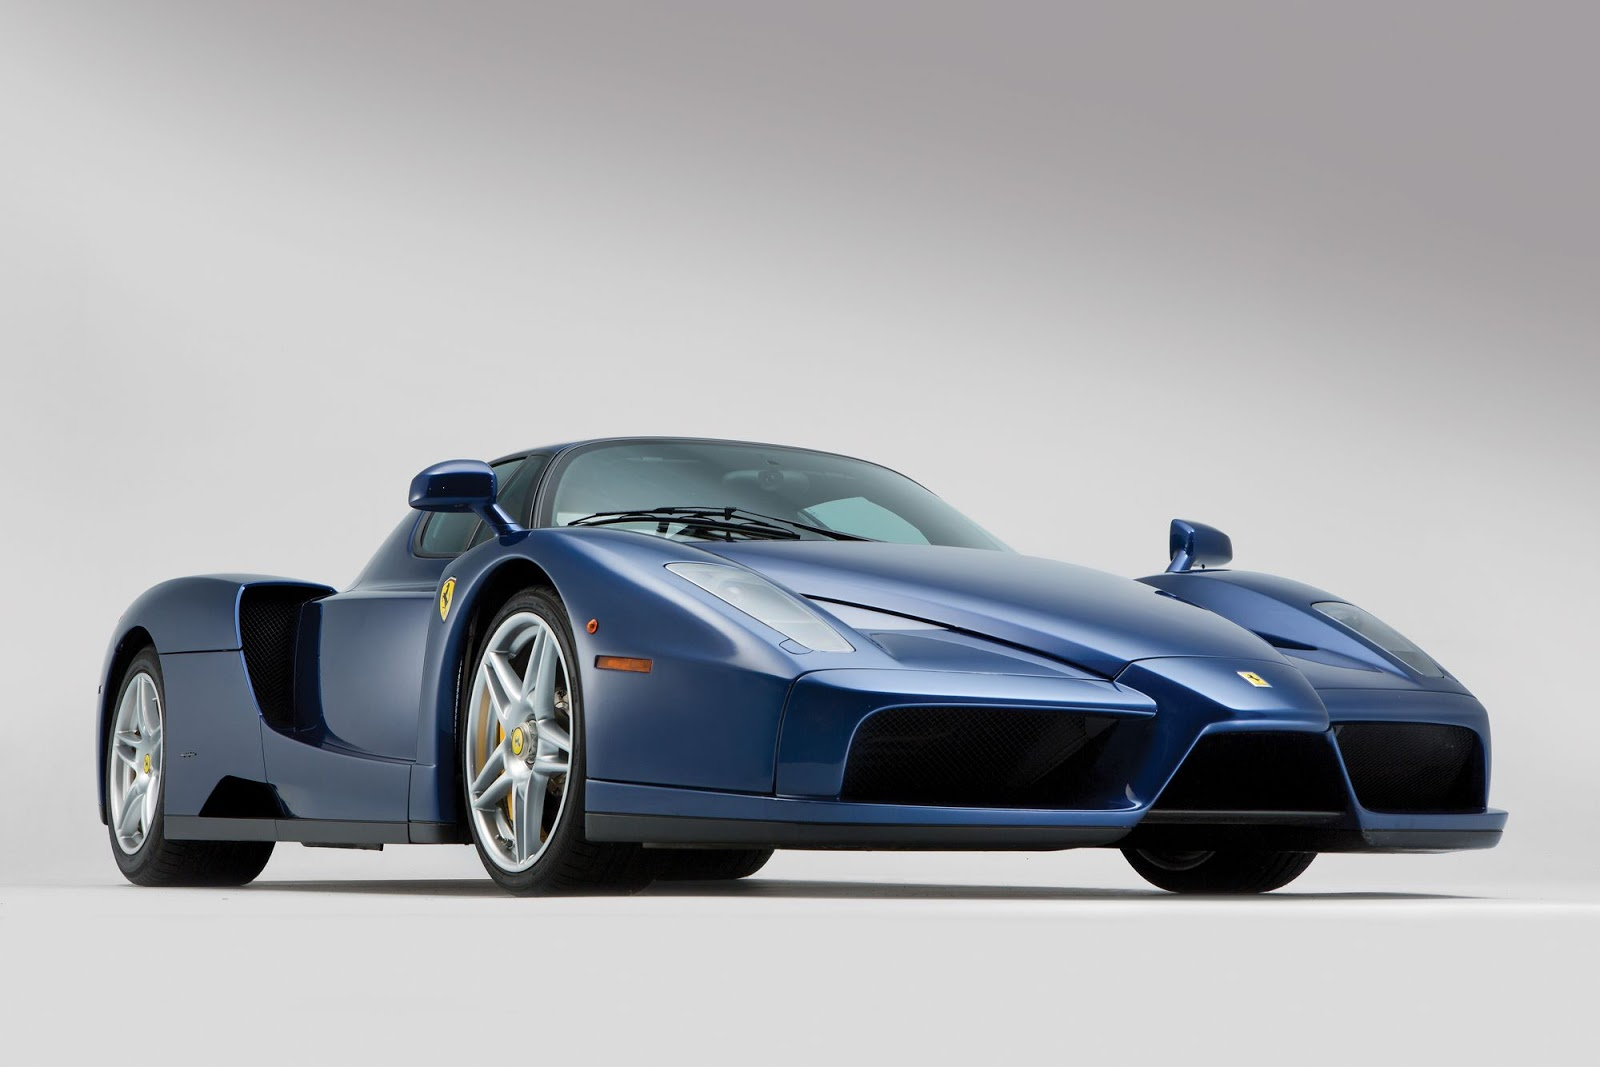 Blue Ferrari Enzo in auction (5)